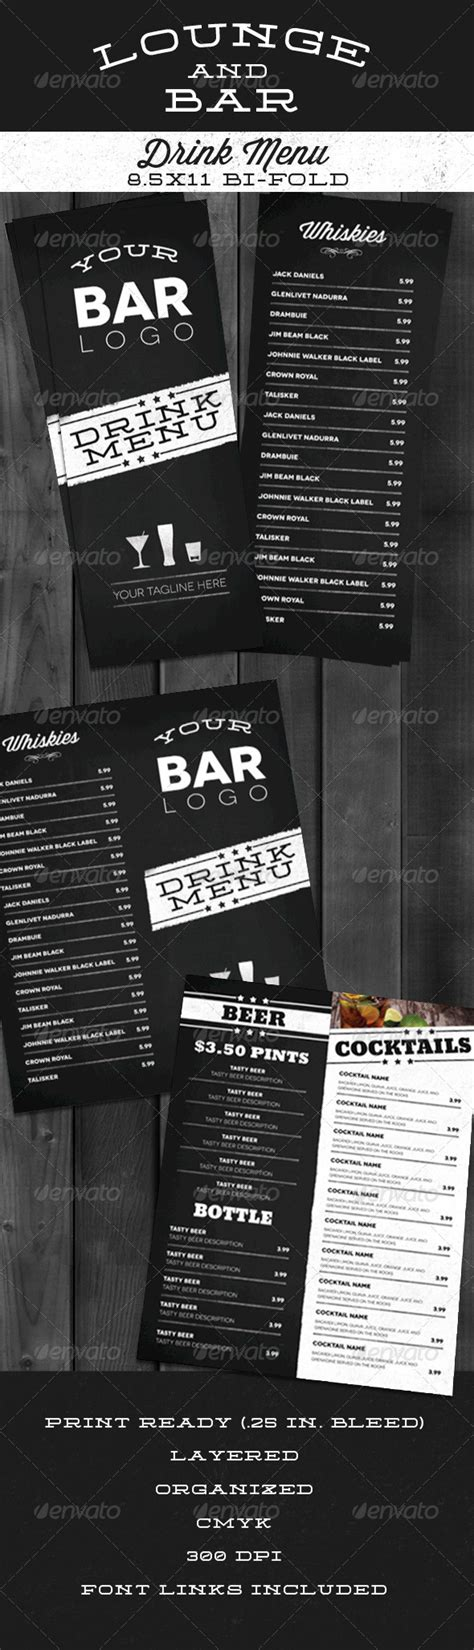 Lounge Bar Drink Menu Modern By Nathanknight Graphicriver Sports Bar Menu Template